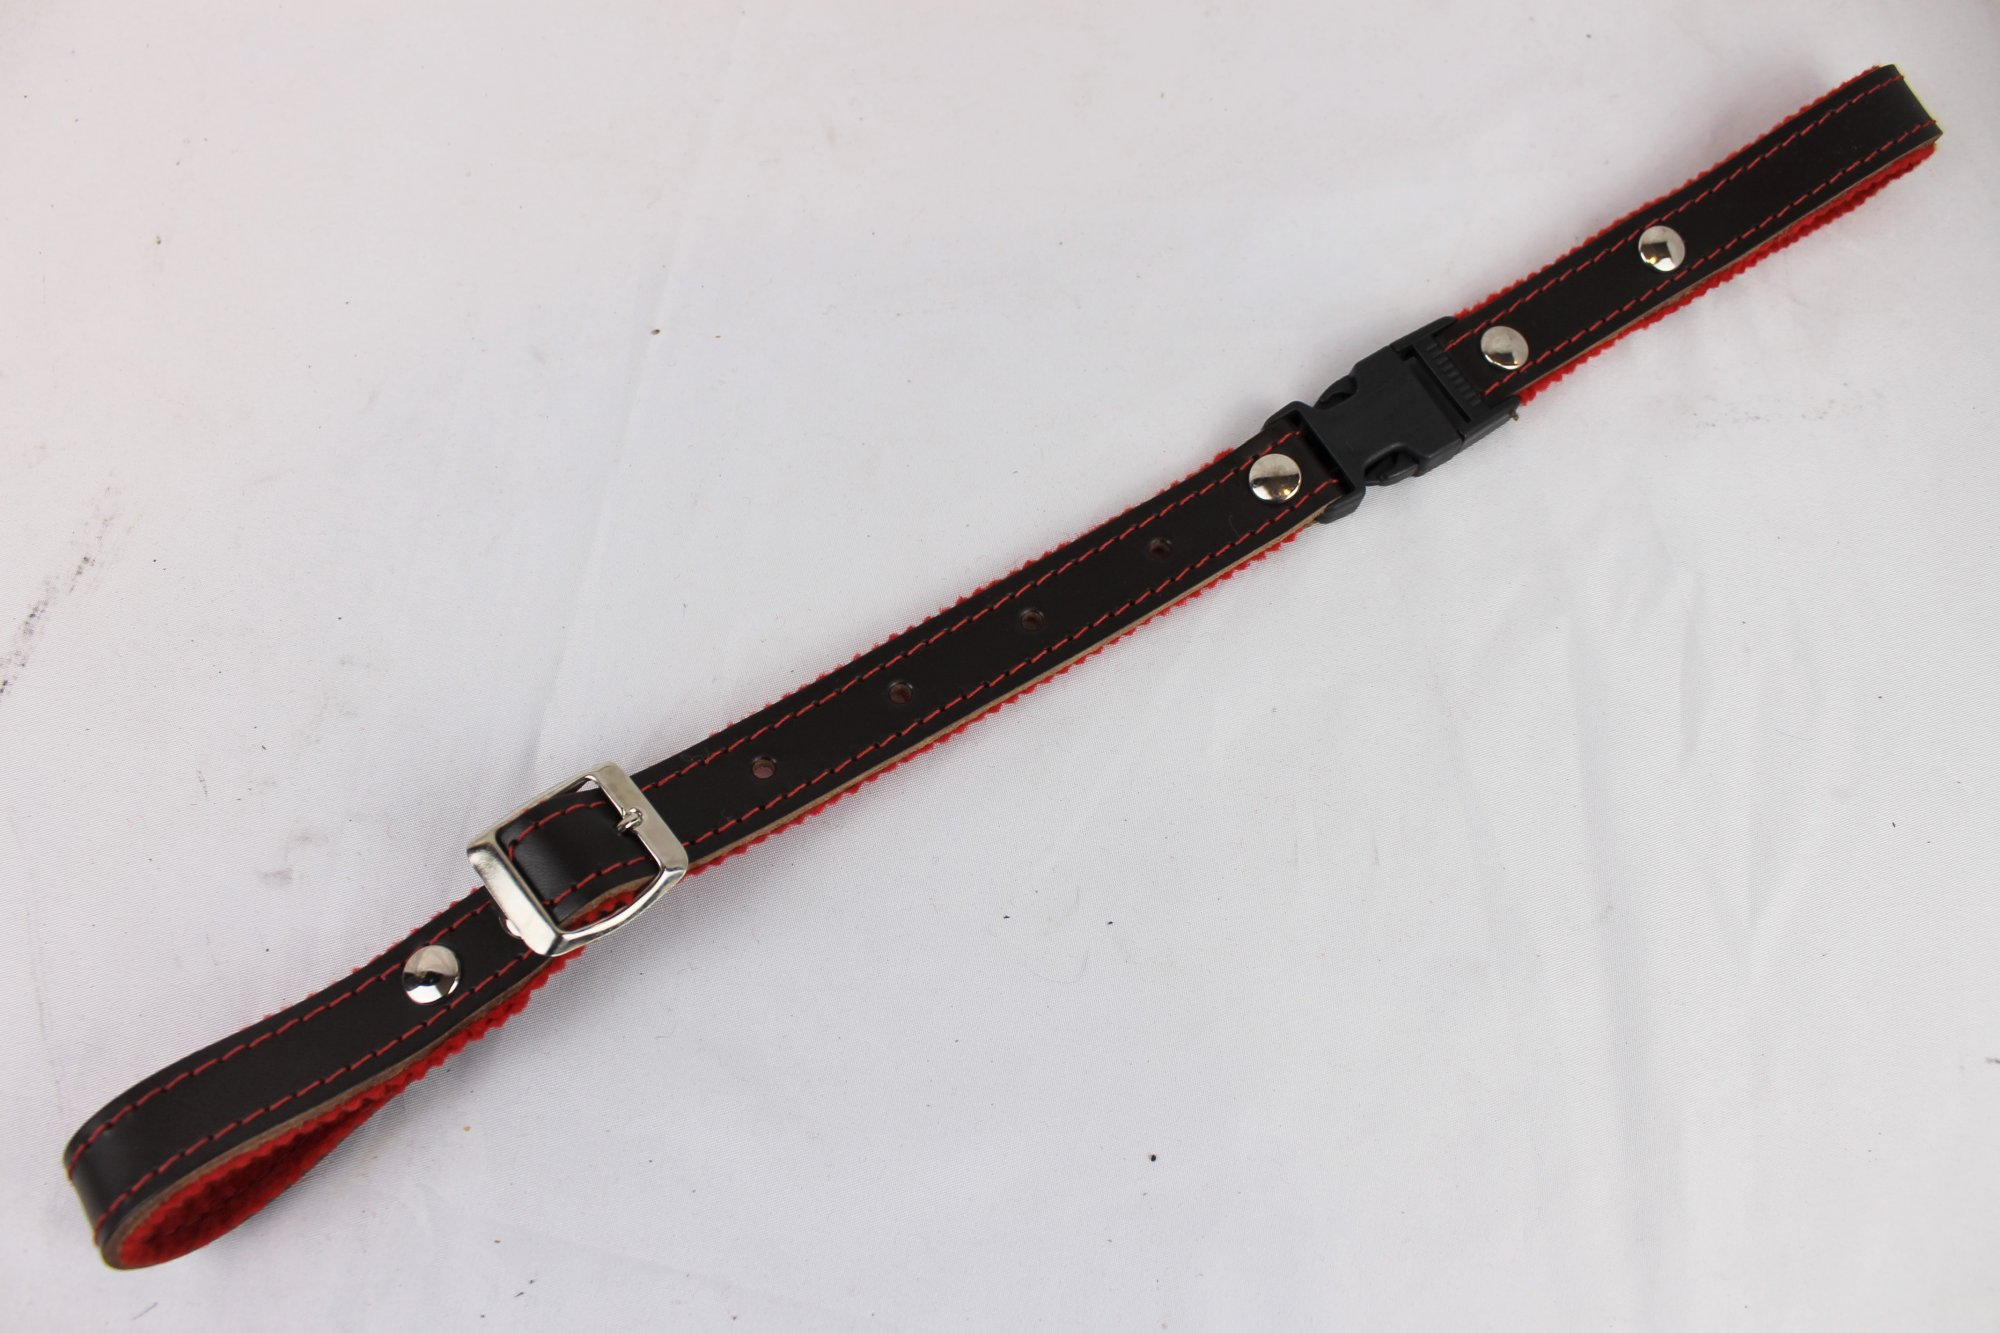 NEW Brown Fuselli Red Felt Lined Leather Back Strap  - Adjustable 13 to 17.5